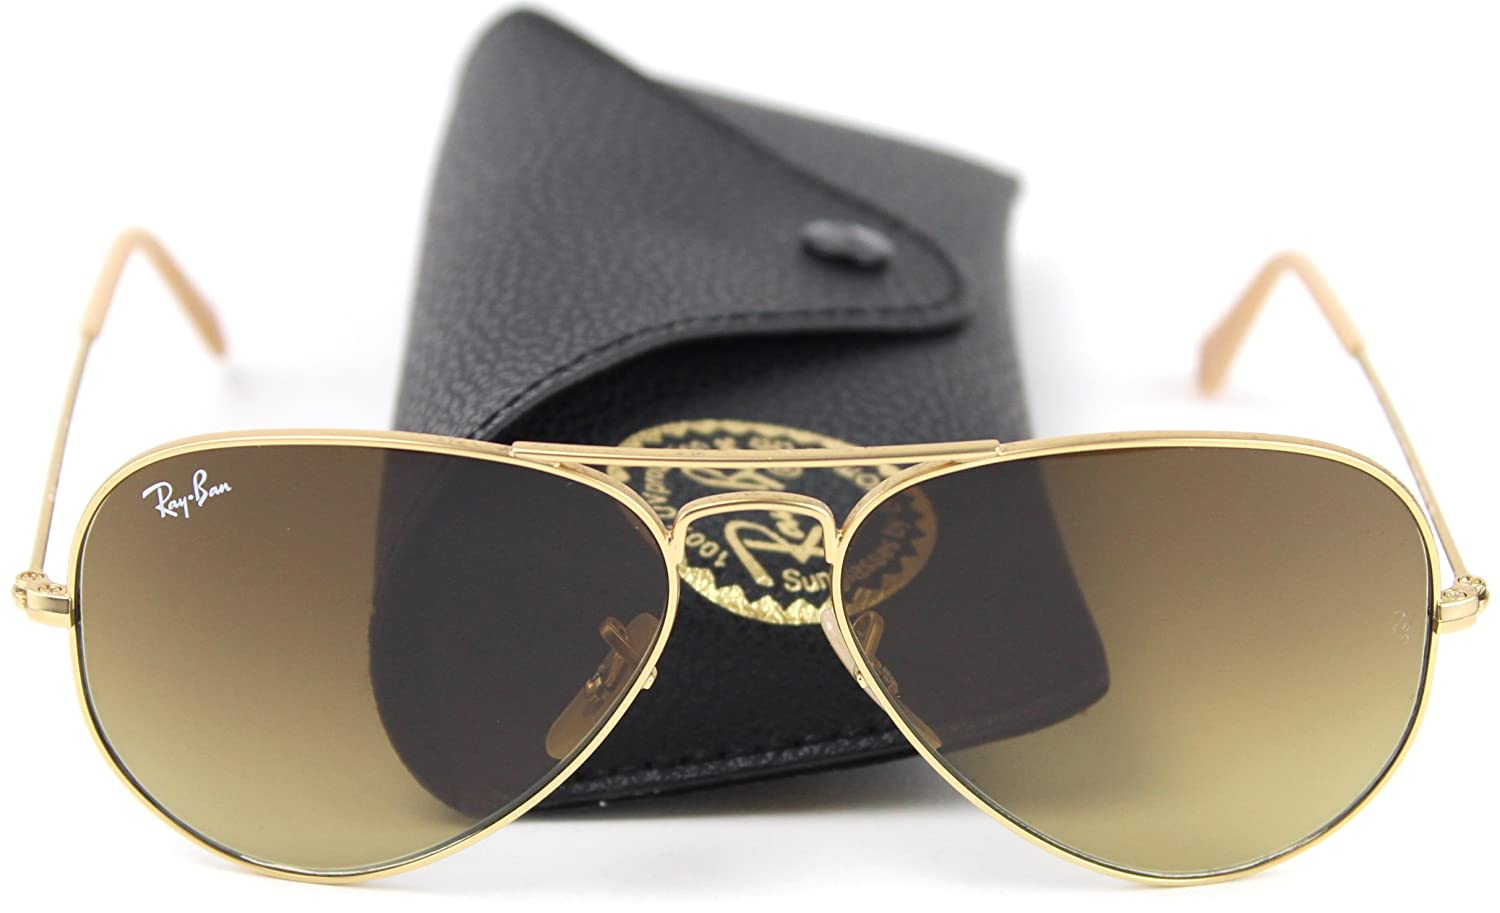 d0a6605295c Amazon.com  Ray-Ban RB3025 112 85 Sunglasses Gold Frame   Brown Gradient  Lens 58mm  Shoes